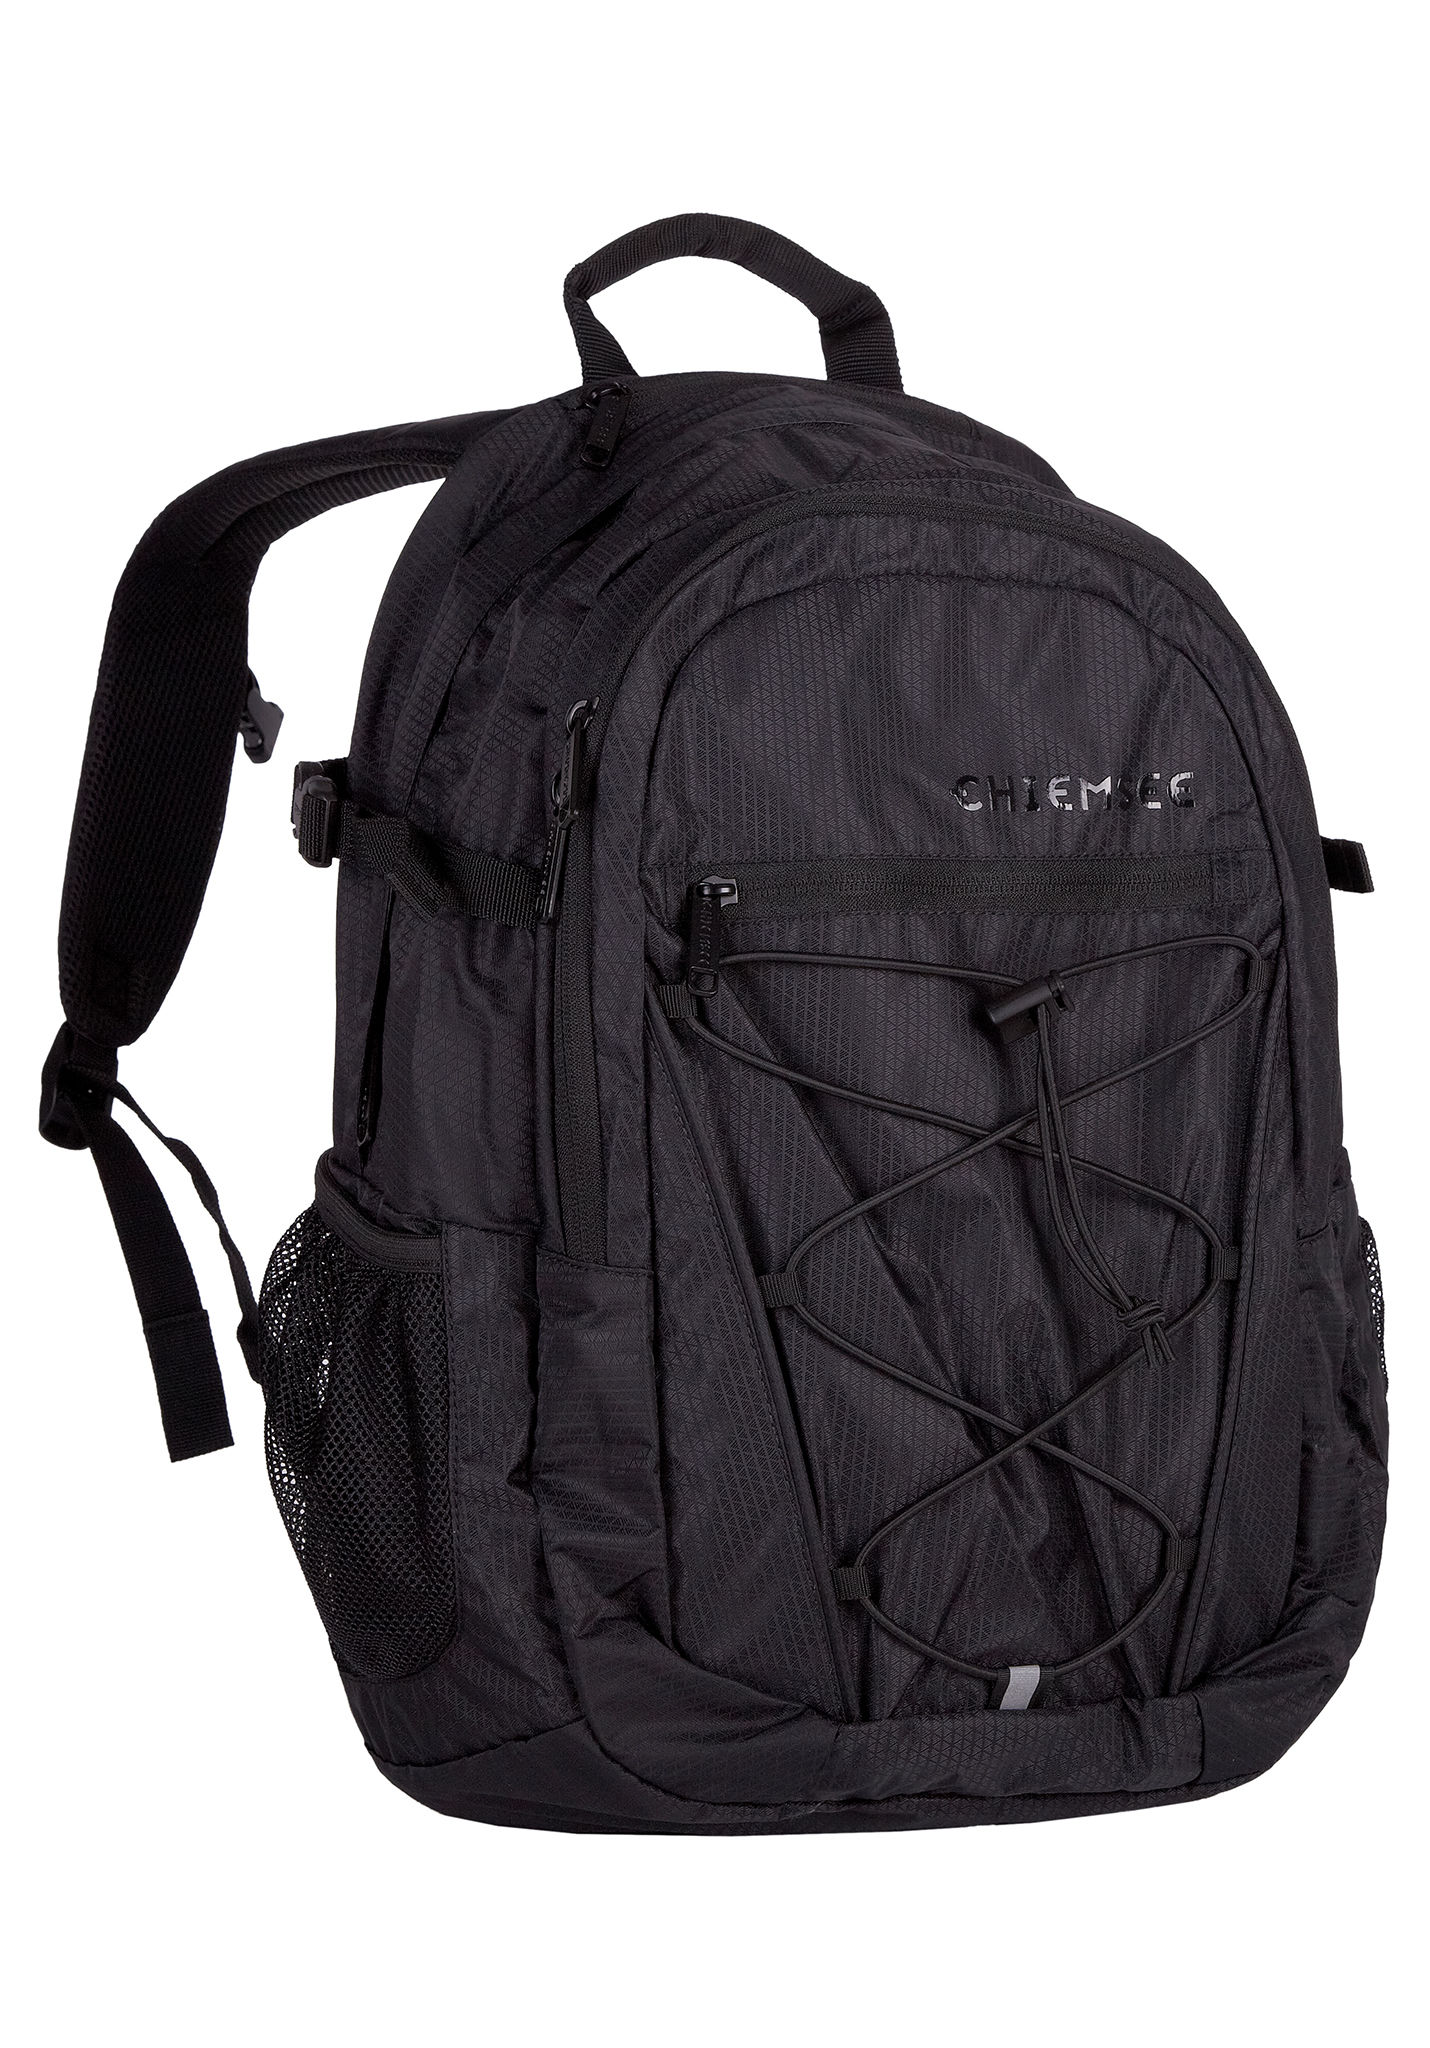 e4f57589c88cb0 Chiemsee Backpack - Rucksack - Schwarz - Planet Sports